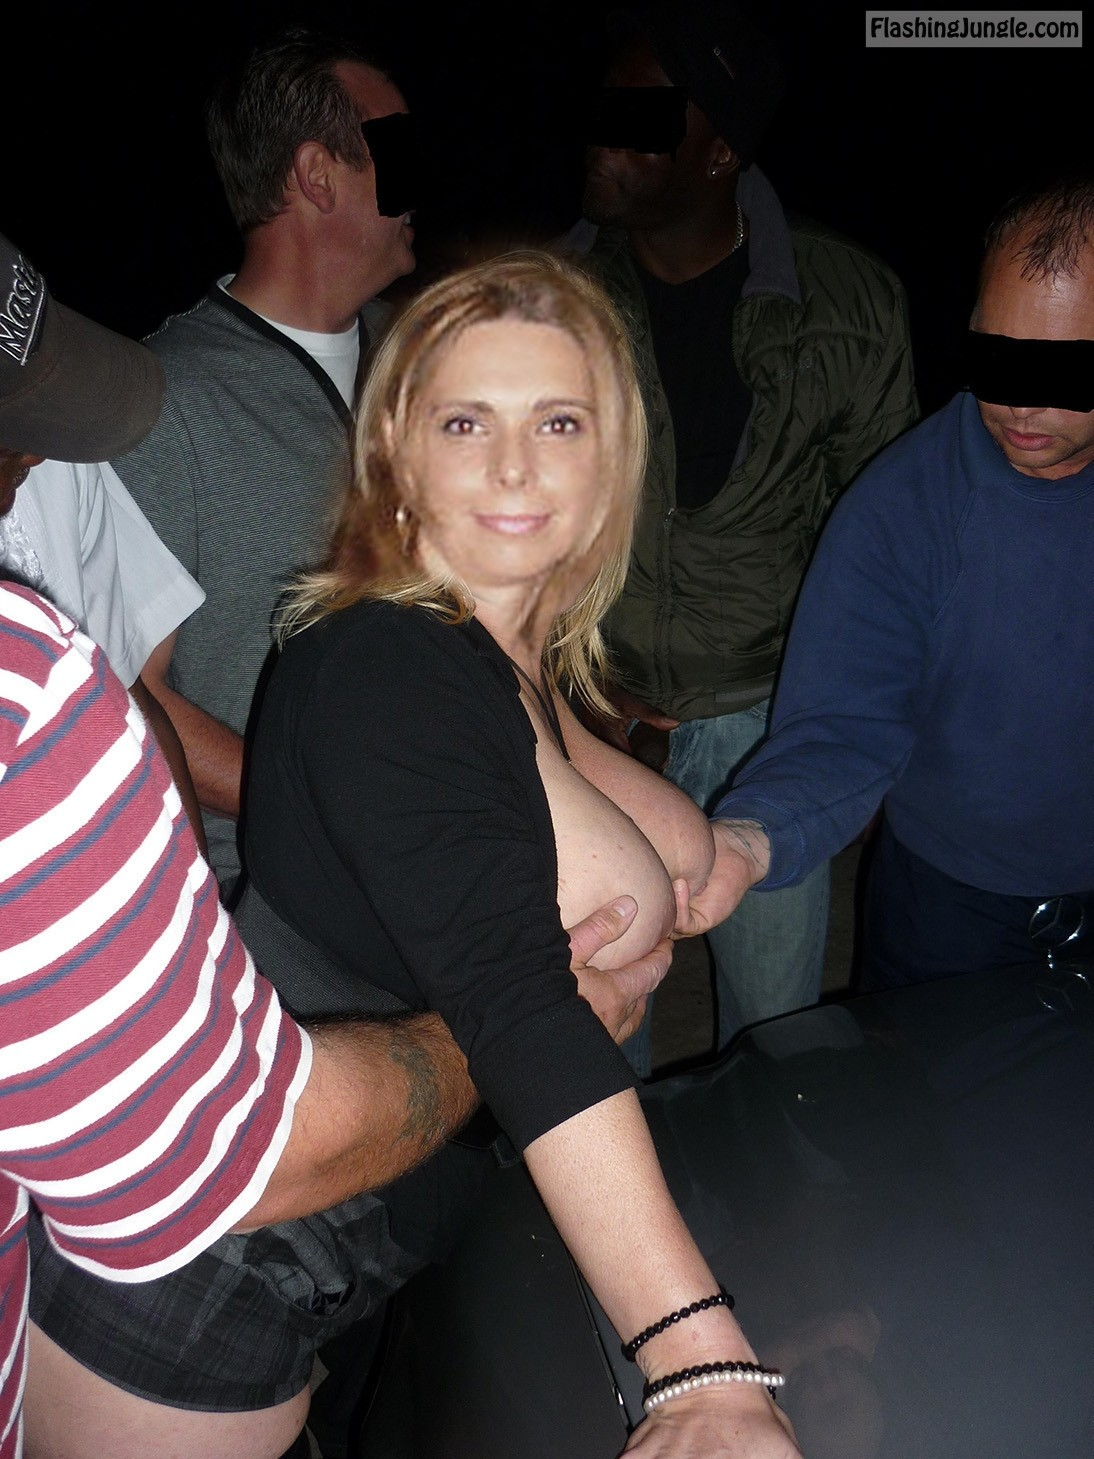 Public Flashing Pics MILF Flashing Pics Hotwife Pics Boobs Flash Pics Bitch Flashing Pics